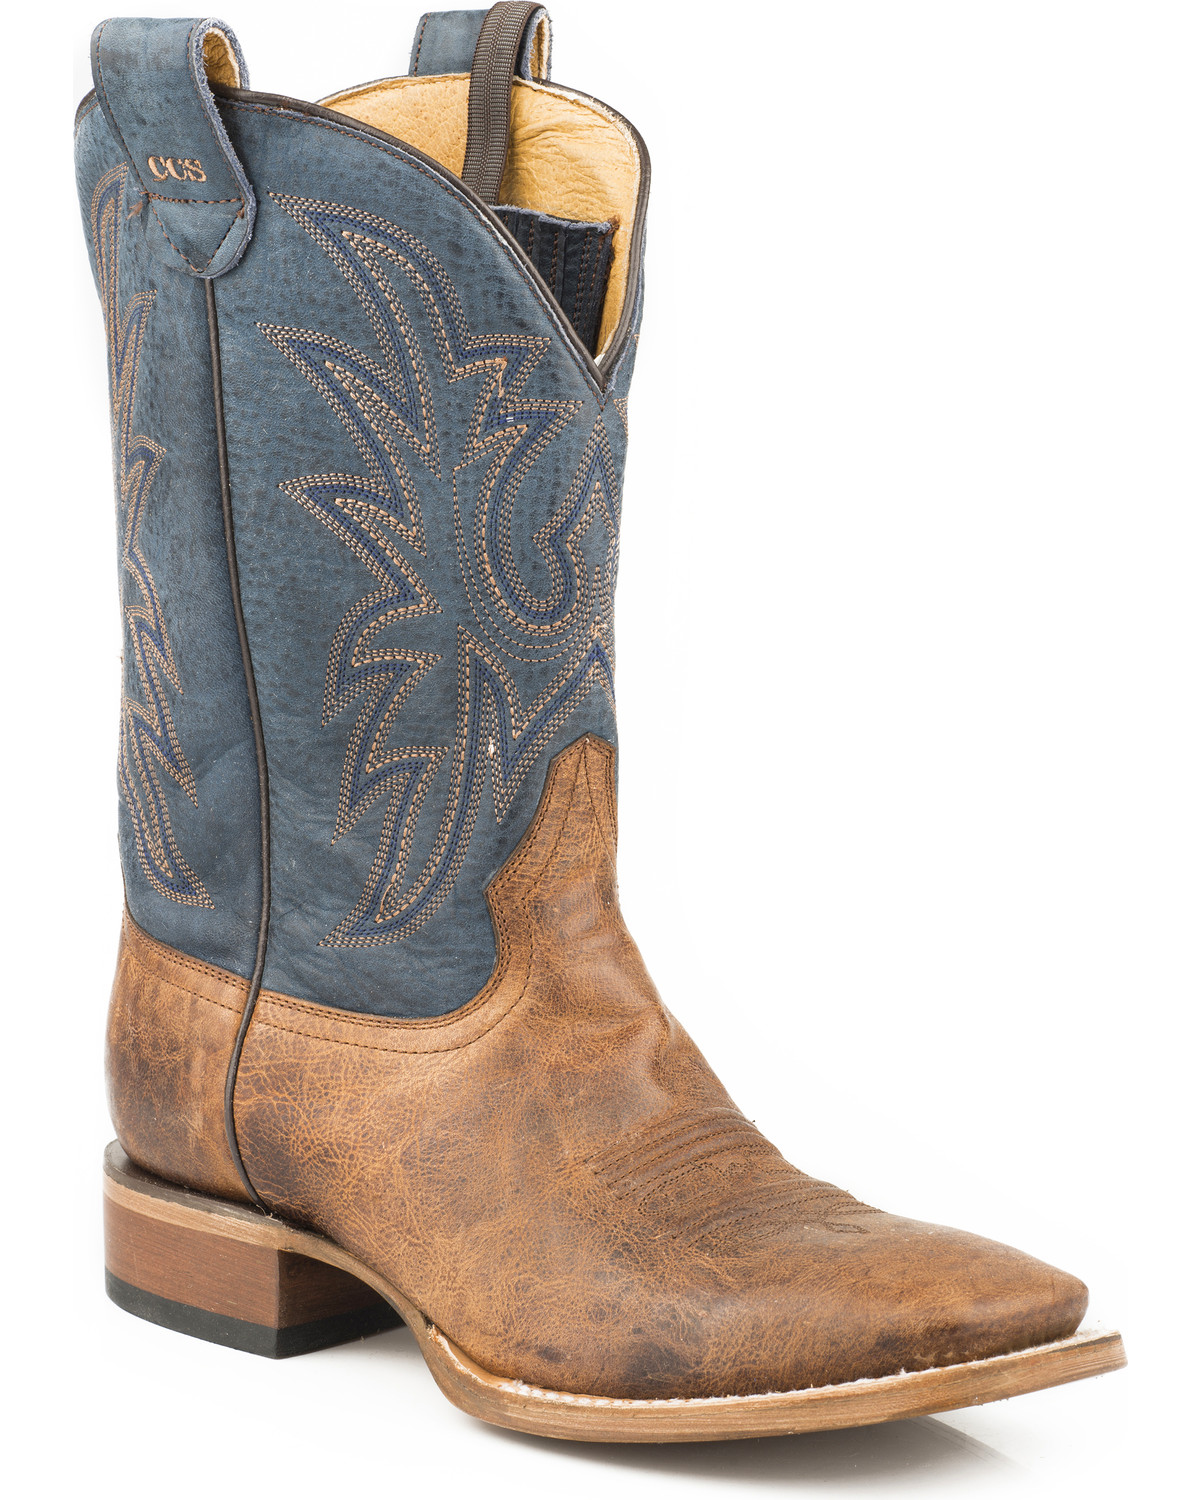 ea1a9a0d2e3 Roper Men's Sidewinder Concealed Carry System Cowboy Boots - Wide Square Toe